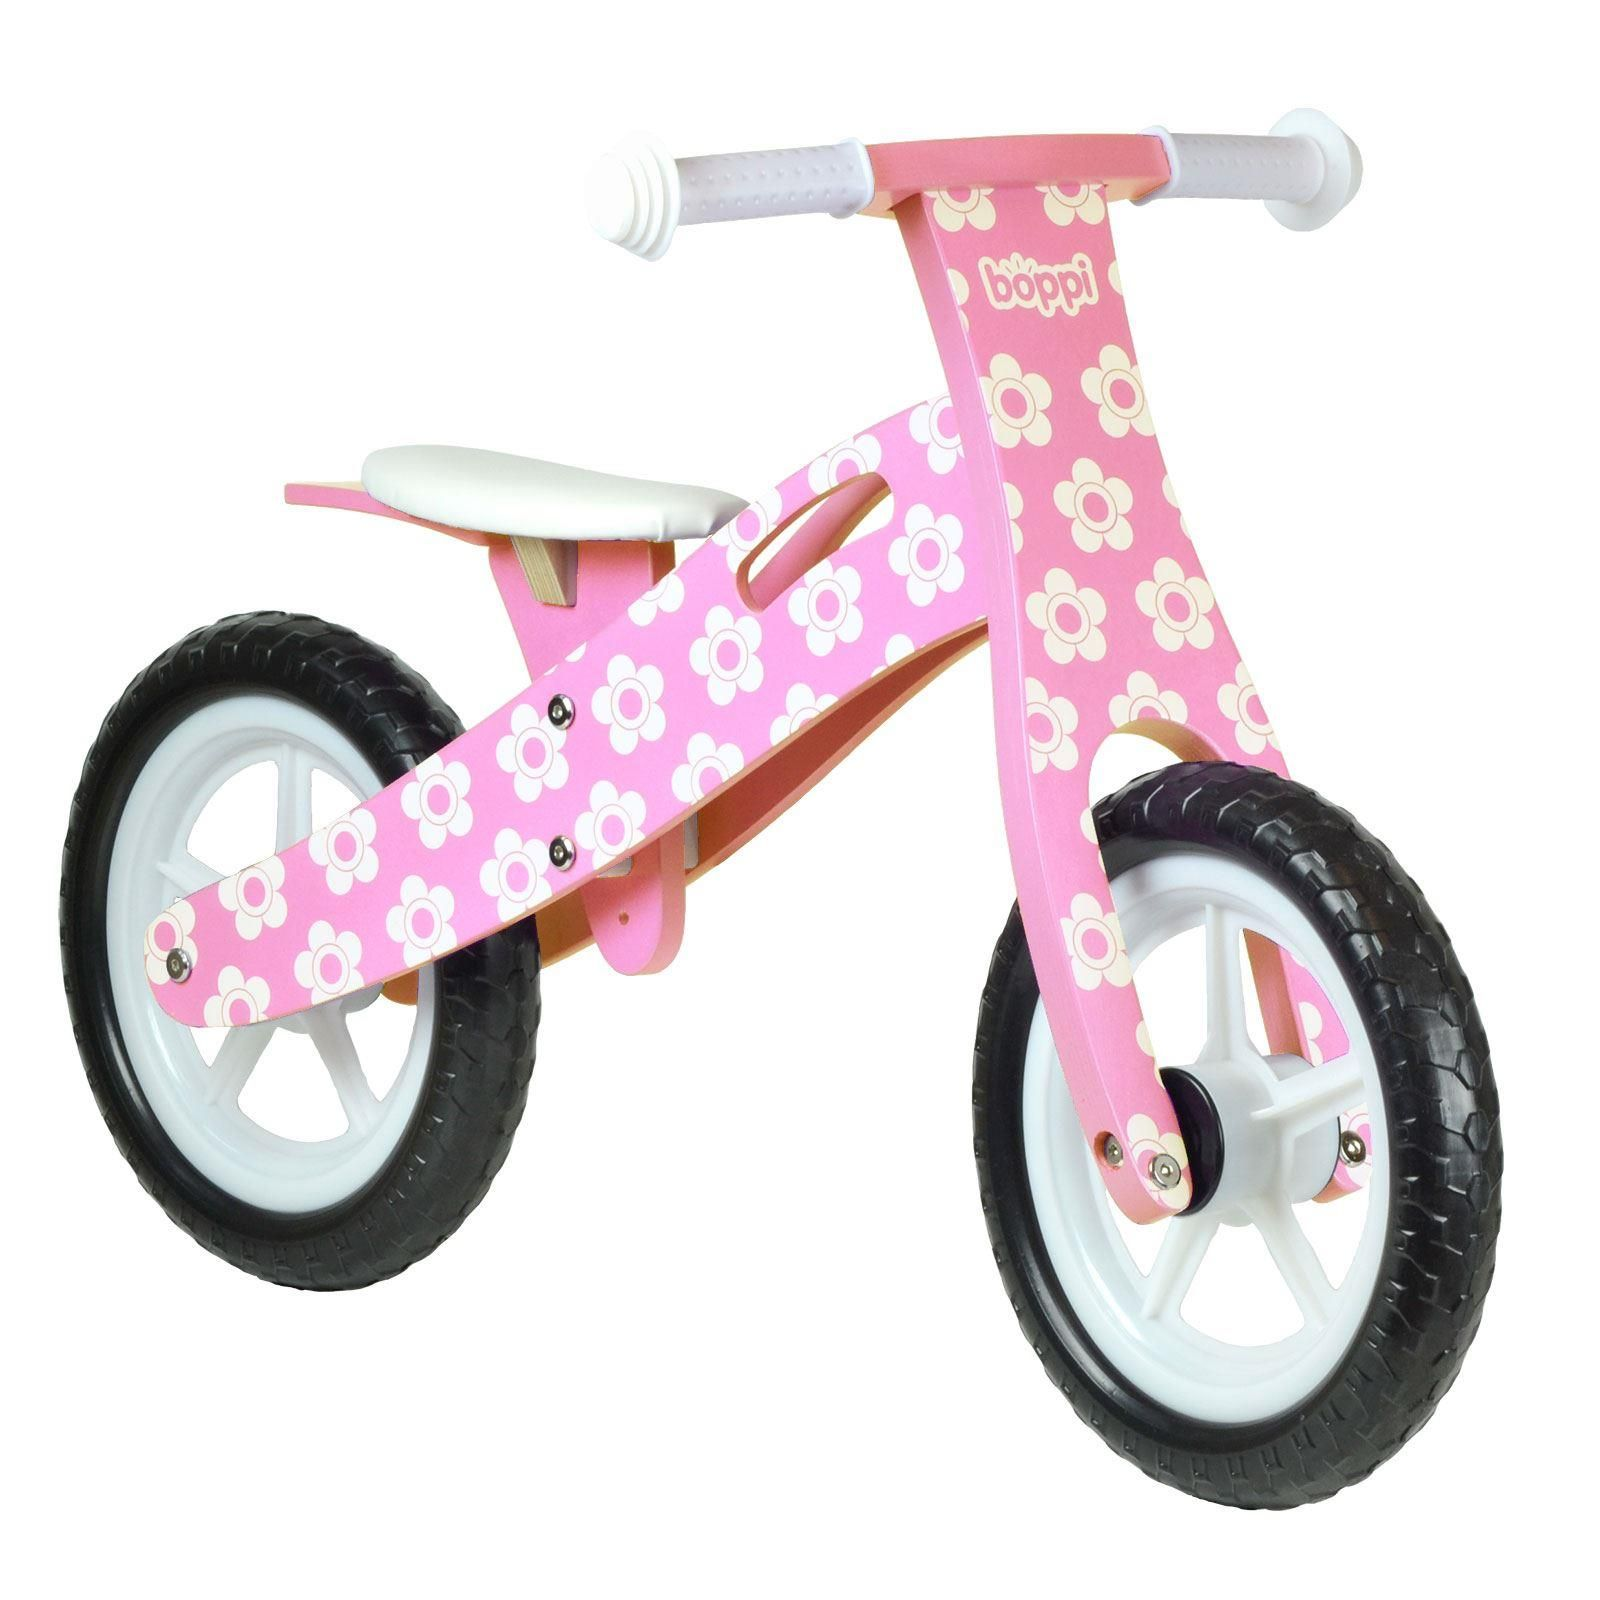 boppi Pink Flower Kids Wooden Balance Bike by bopster